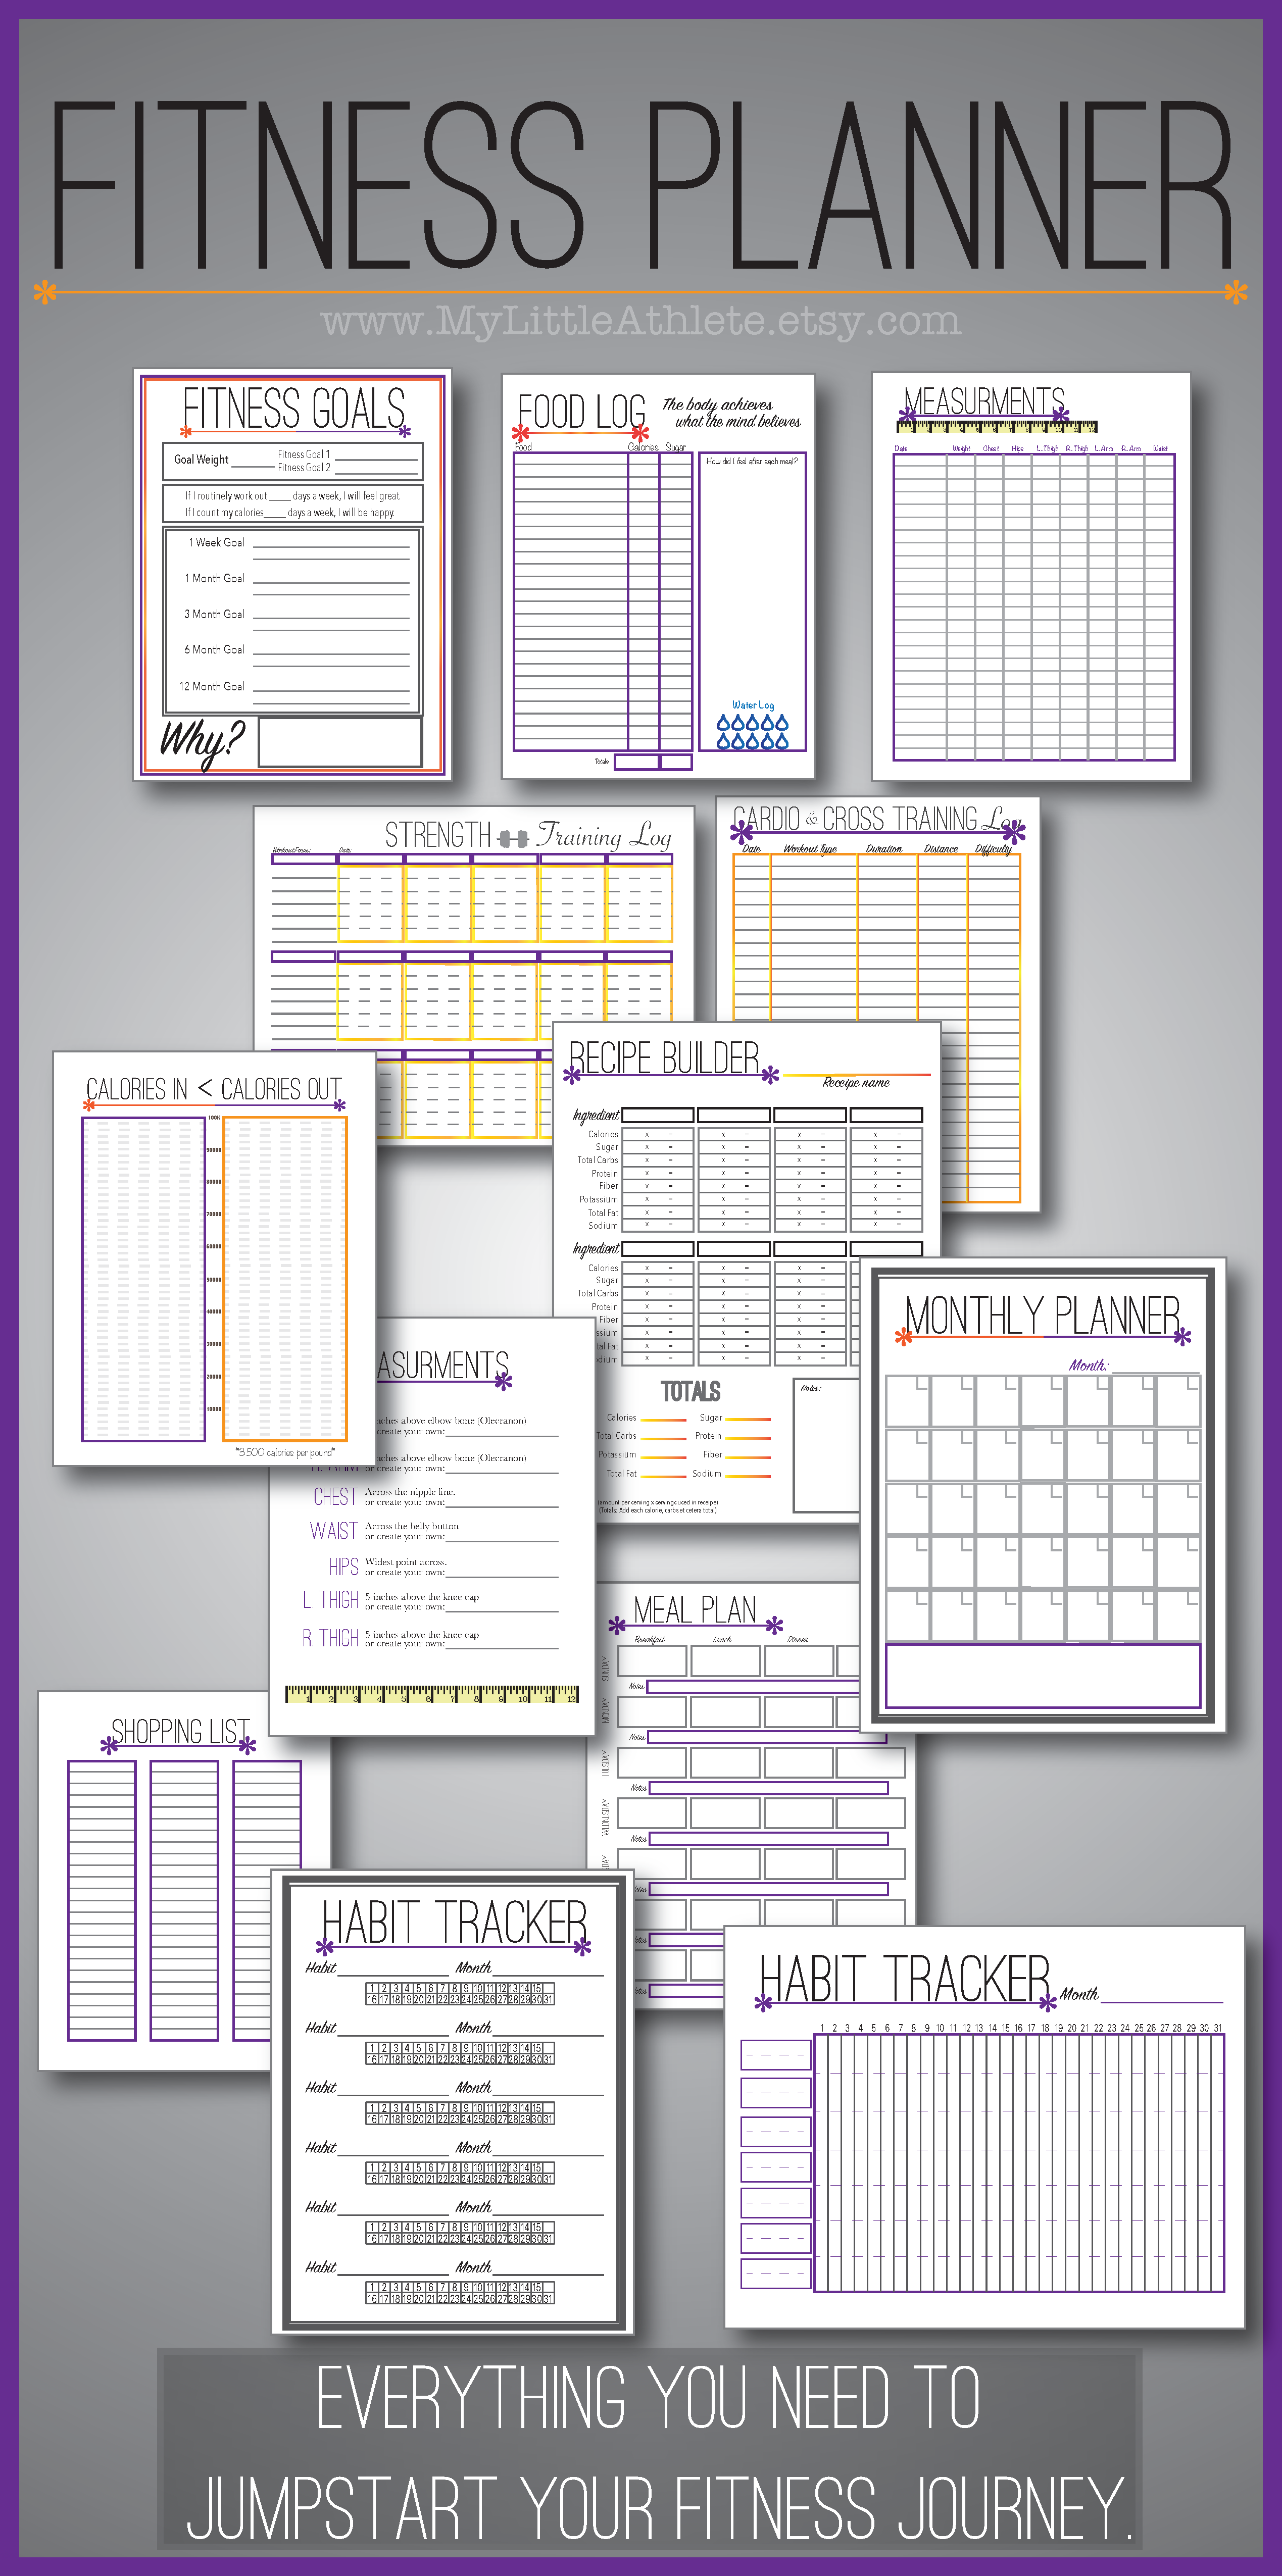 a fitness planner that includes a strength and cardio log food log